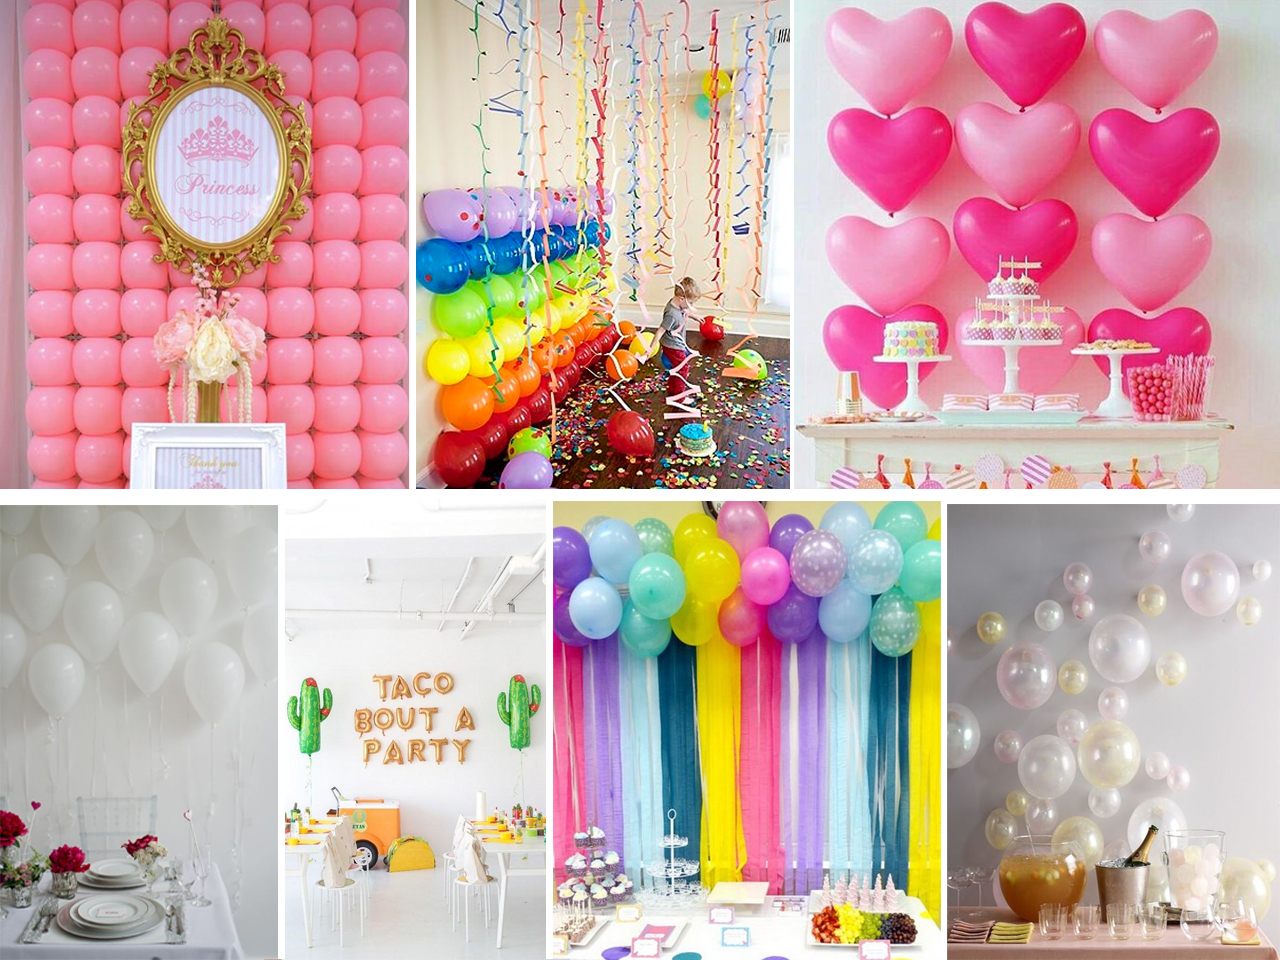 Descubre c mo decorar con globos con estas fant sticas ideas for Como revestir una pared con ceramica